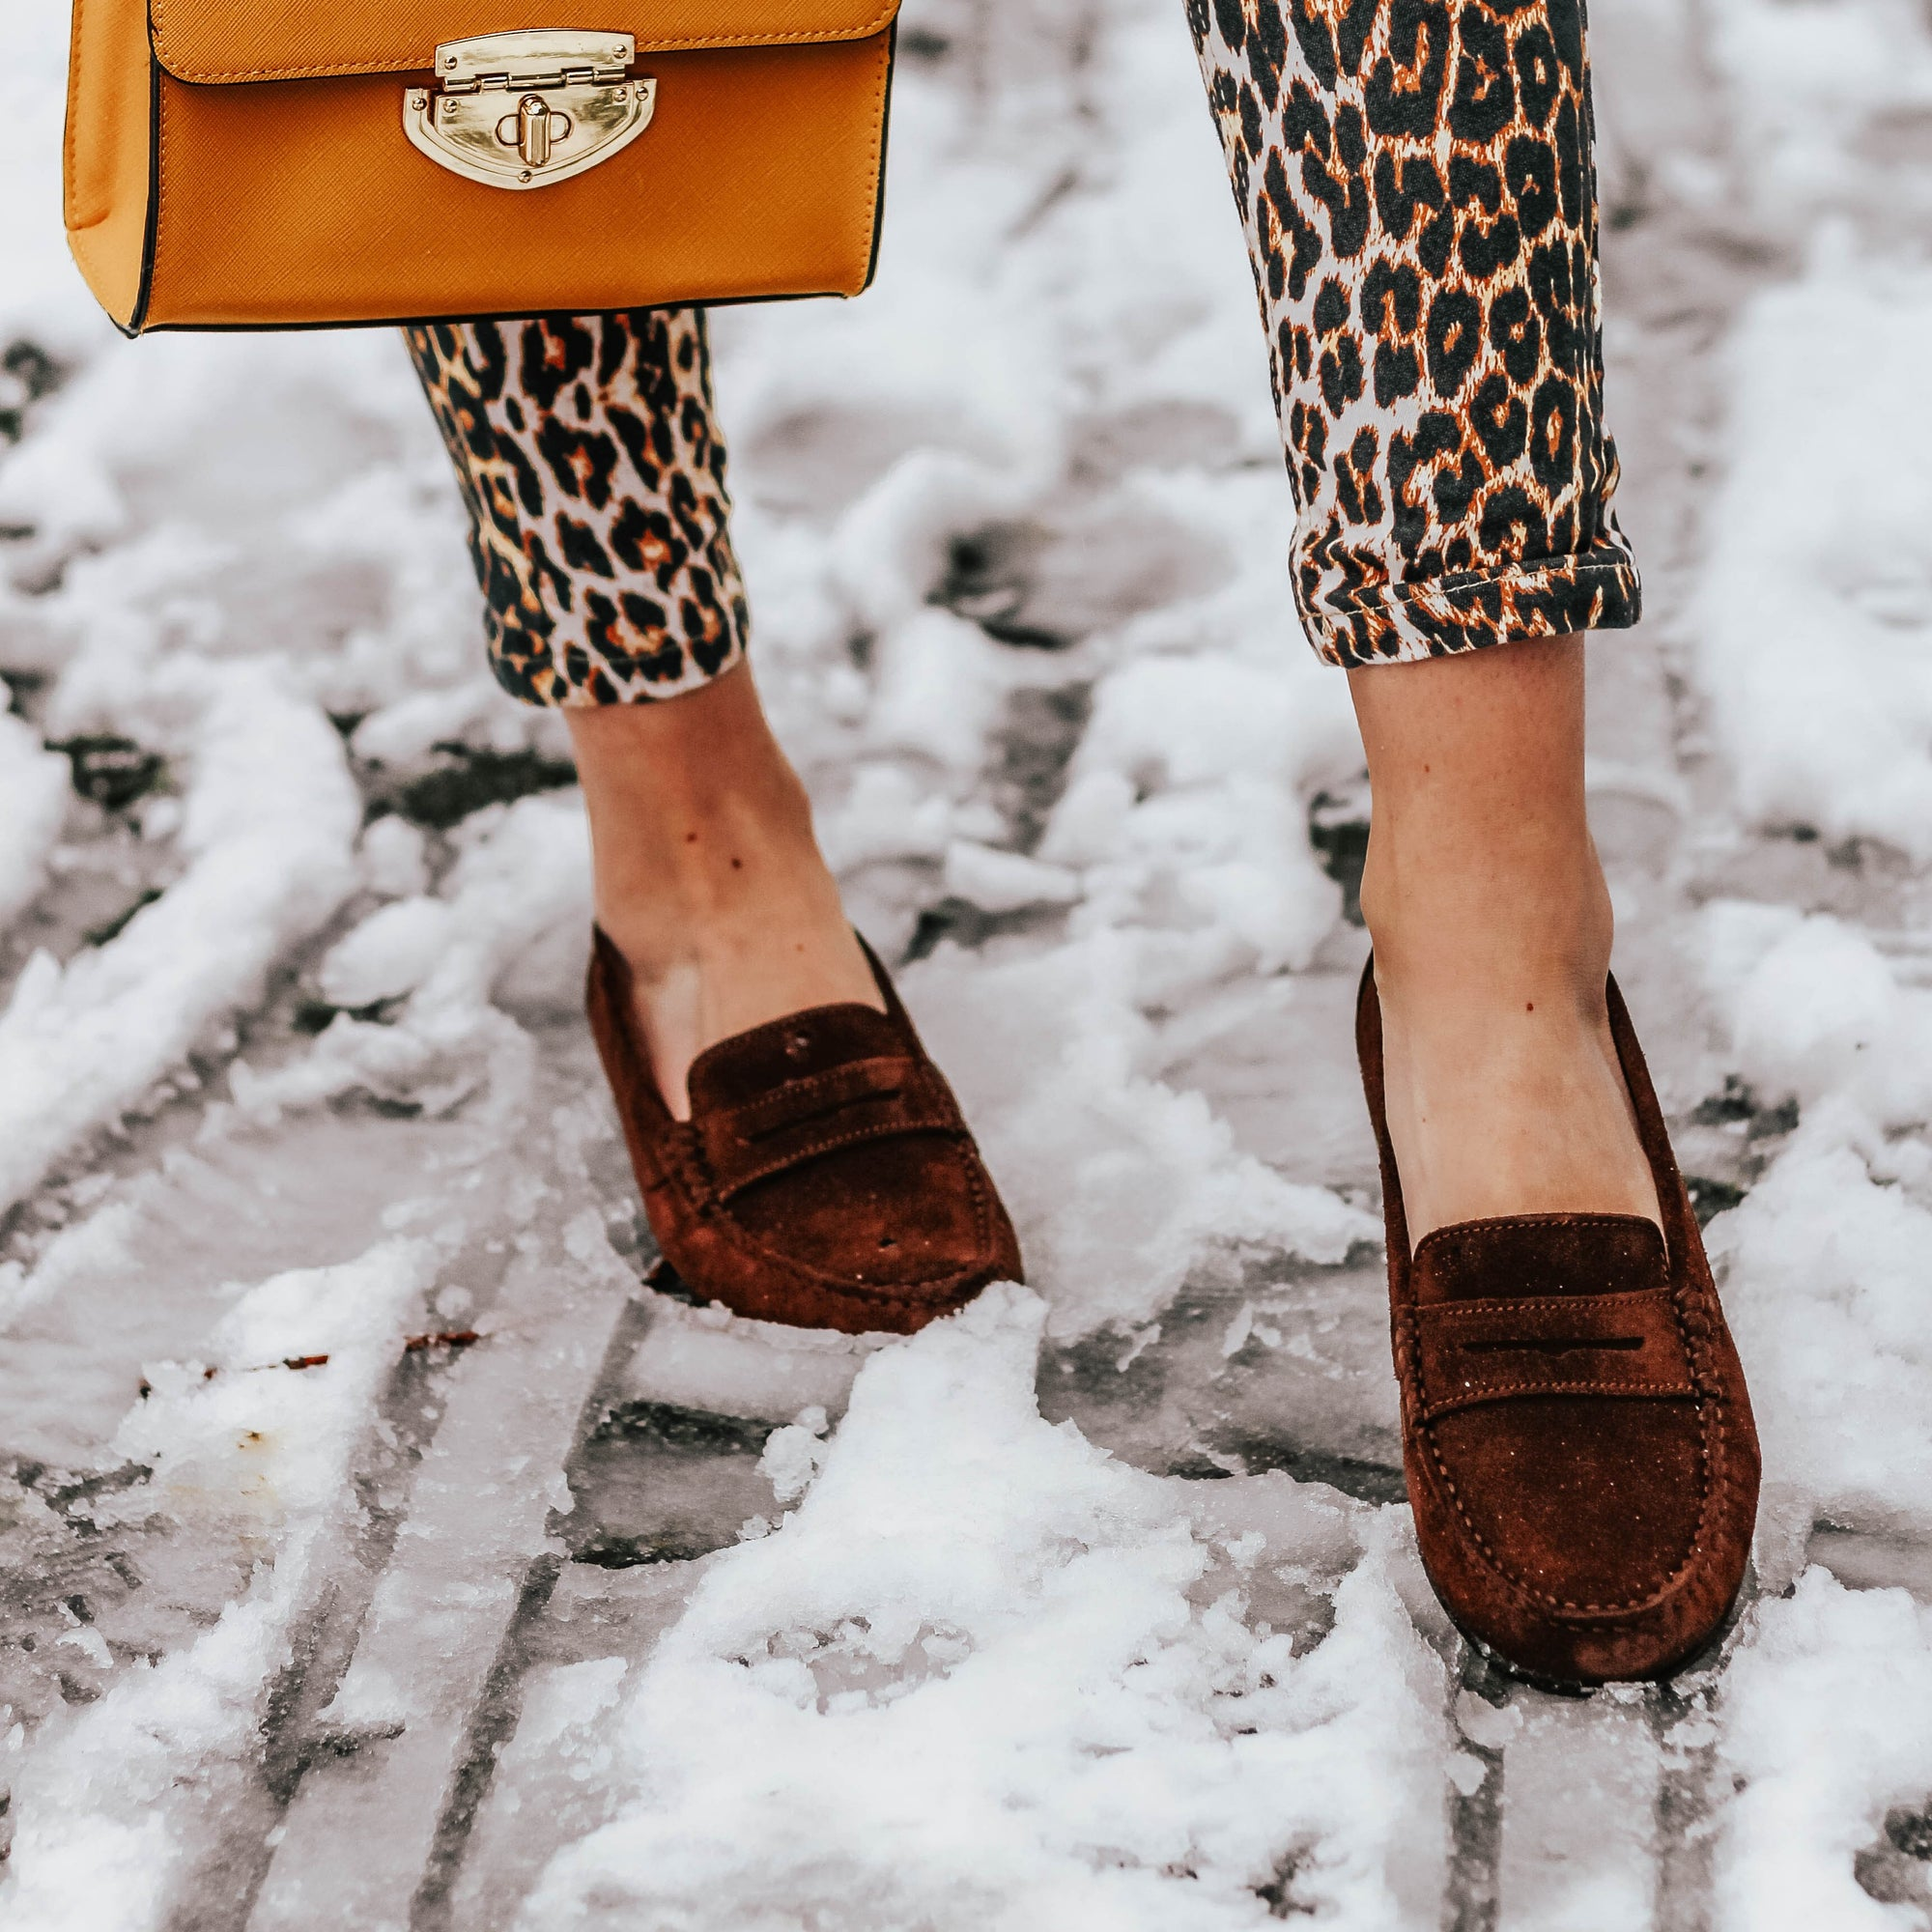 Hugs & Co. Suede Loafers styled by @aglassofice